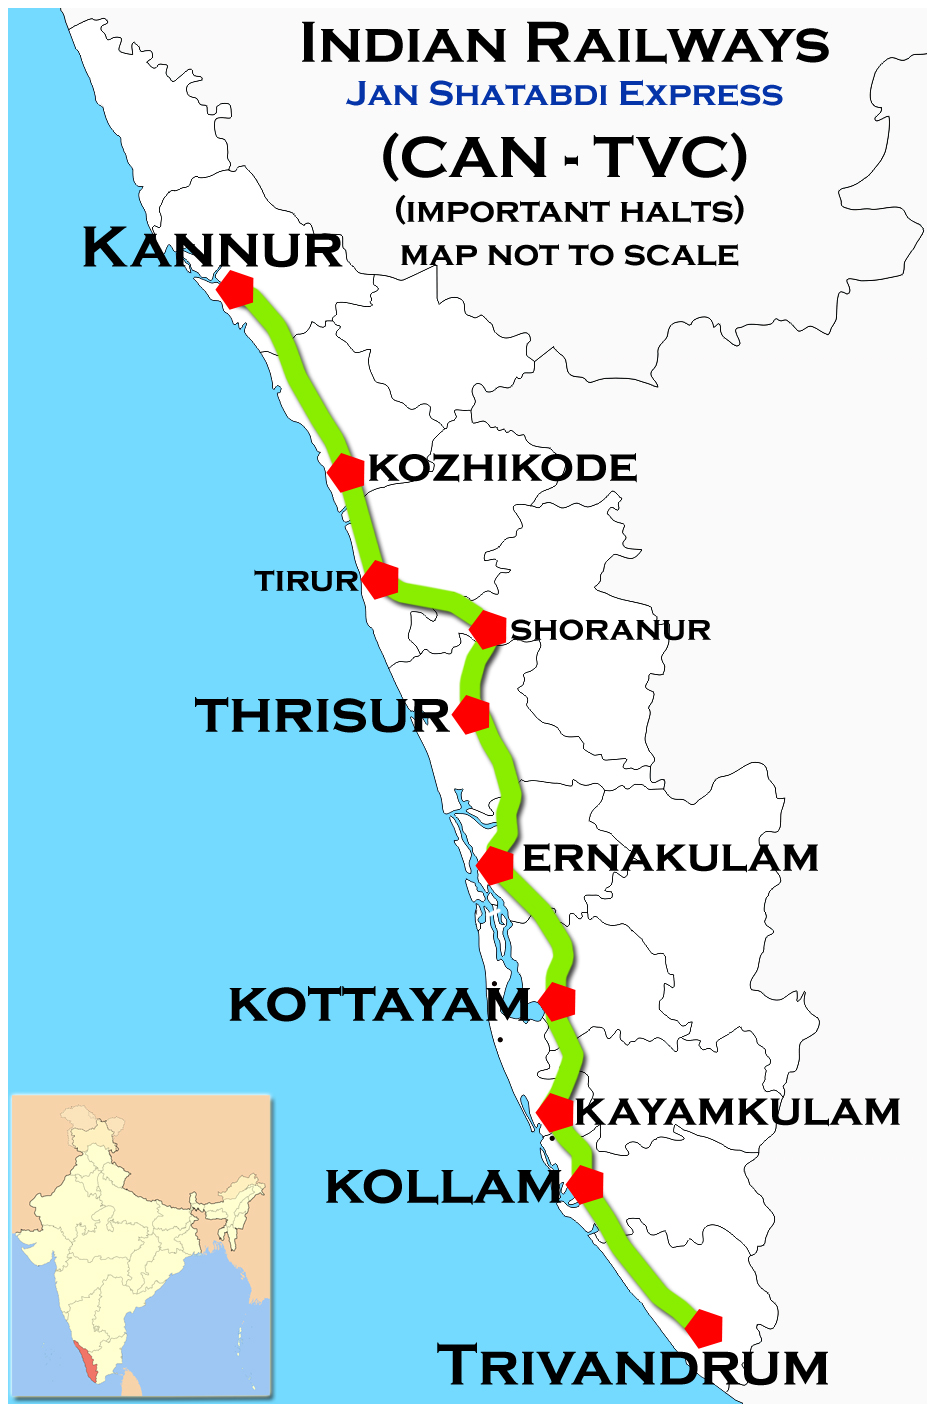 ... Tawi to Mangalore, and ranked the third longest running train in Indian  Railways in terms of distance traveled. It travels through the most of  states ...